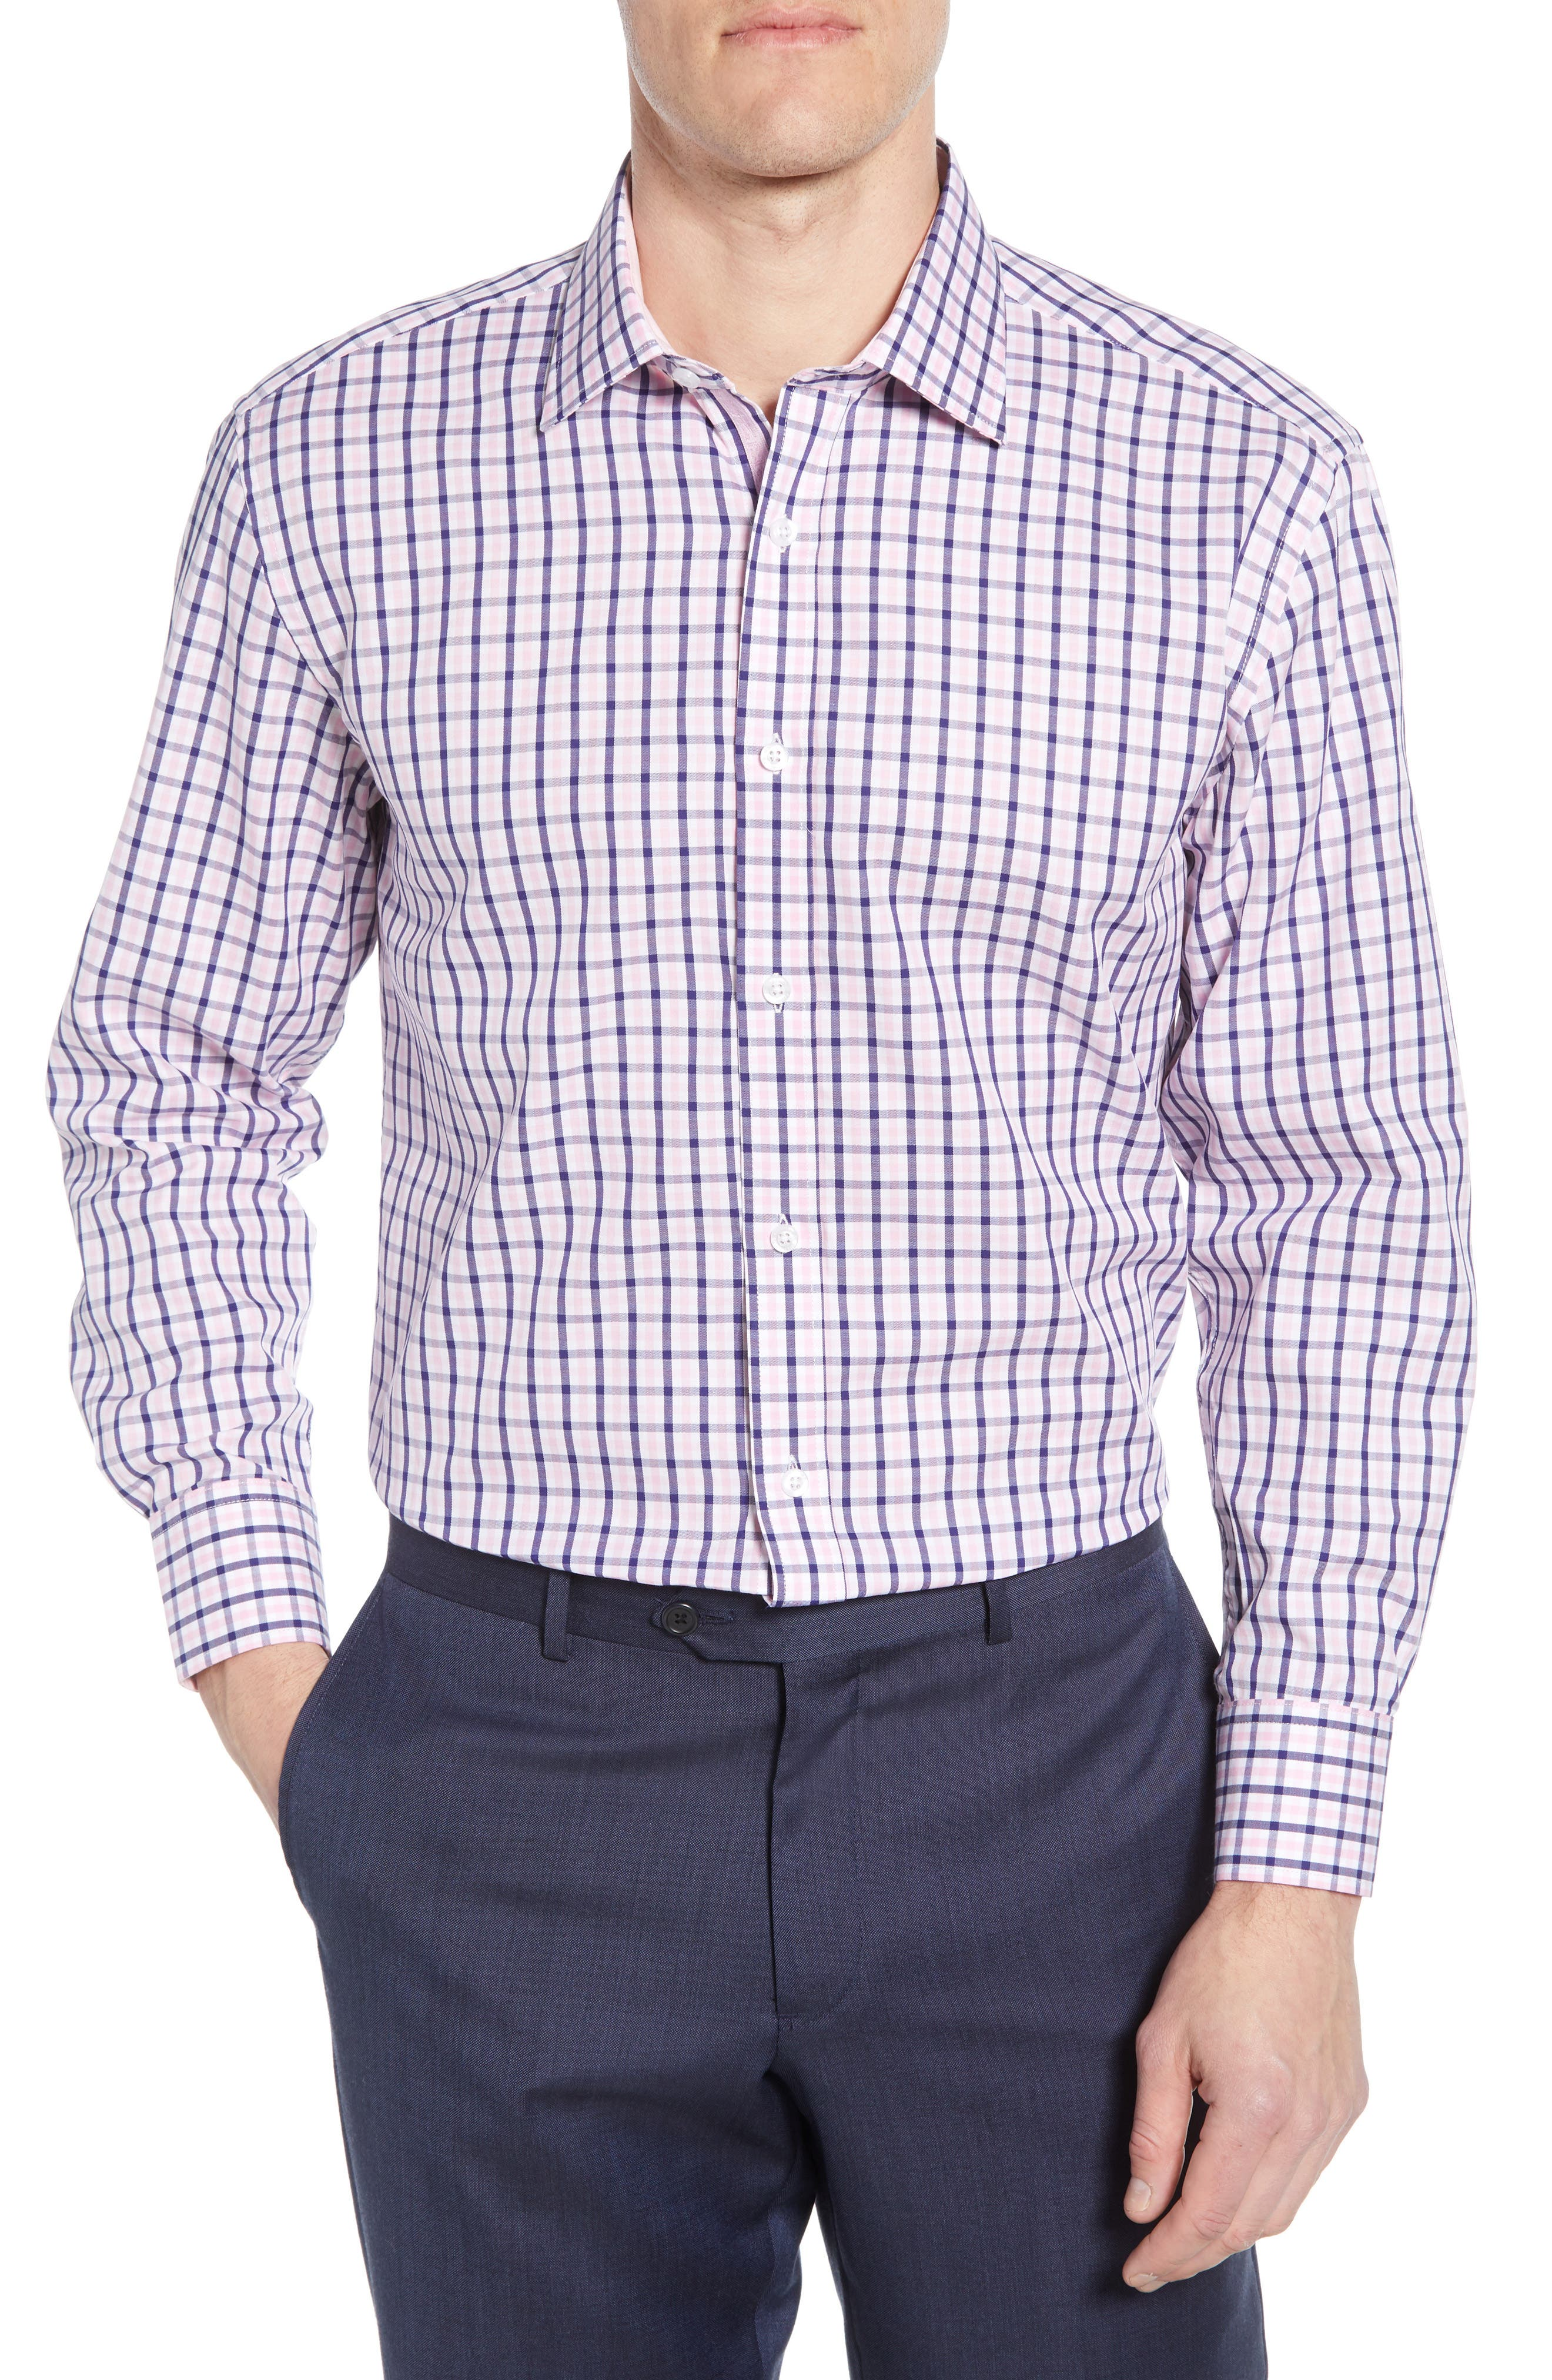 Clothing, Shoes & Accessories Lovely Lorenzo Uomo Mens Dress Shirt 17 34-35 Purple Blue Trim Fit Checkered Collar Men's Clothing